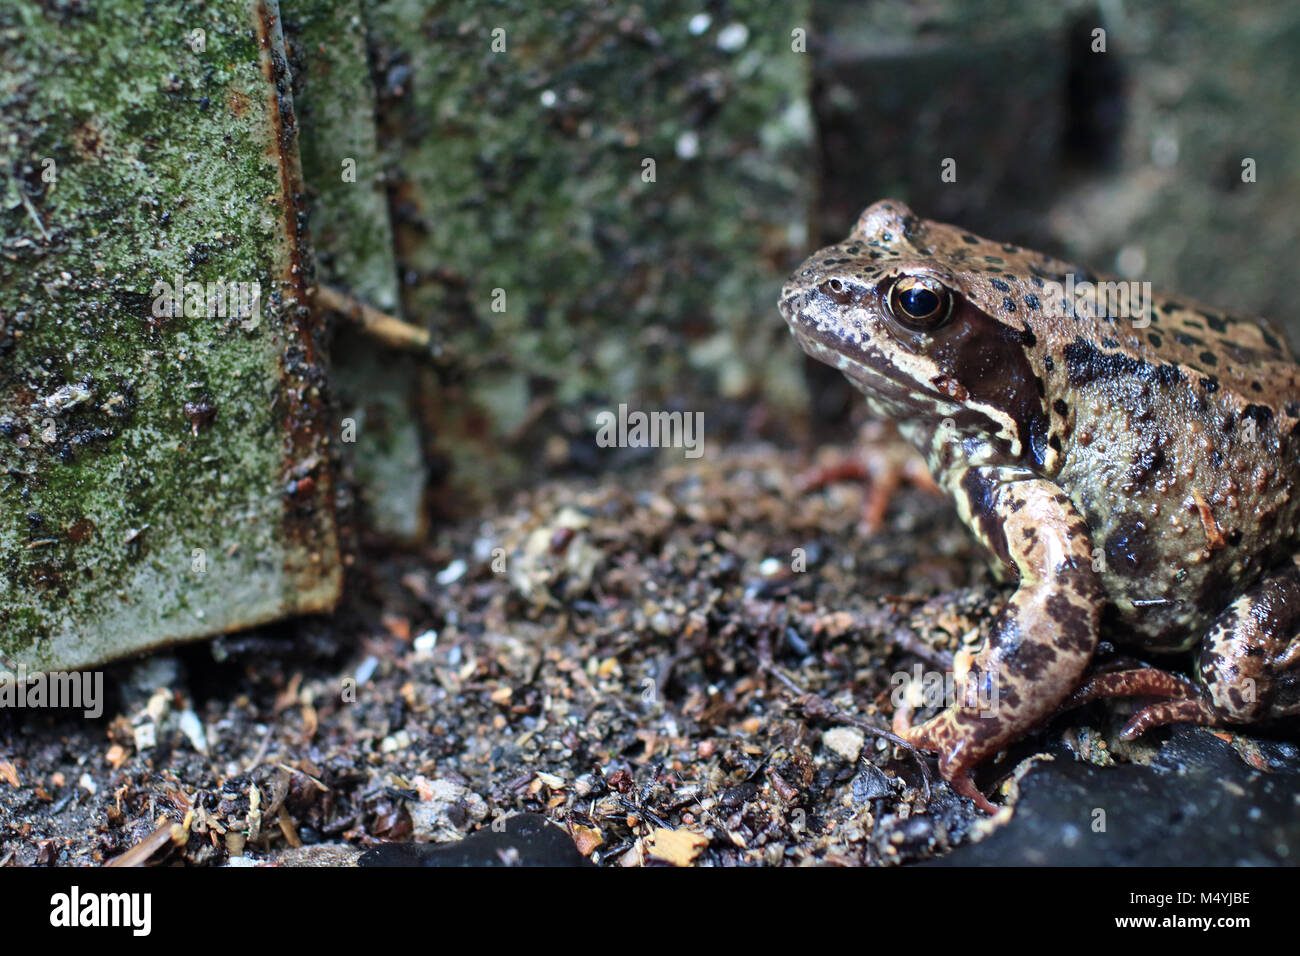 inconspicuous motley spotted frog in the wild - Stock Image